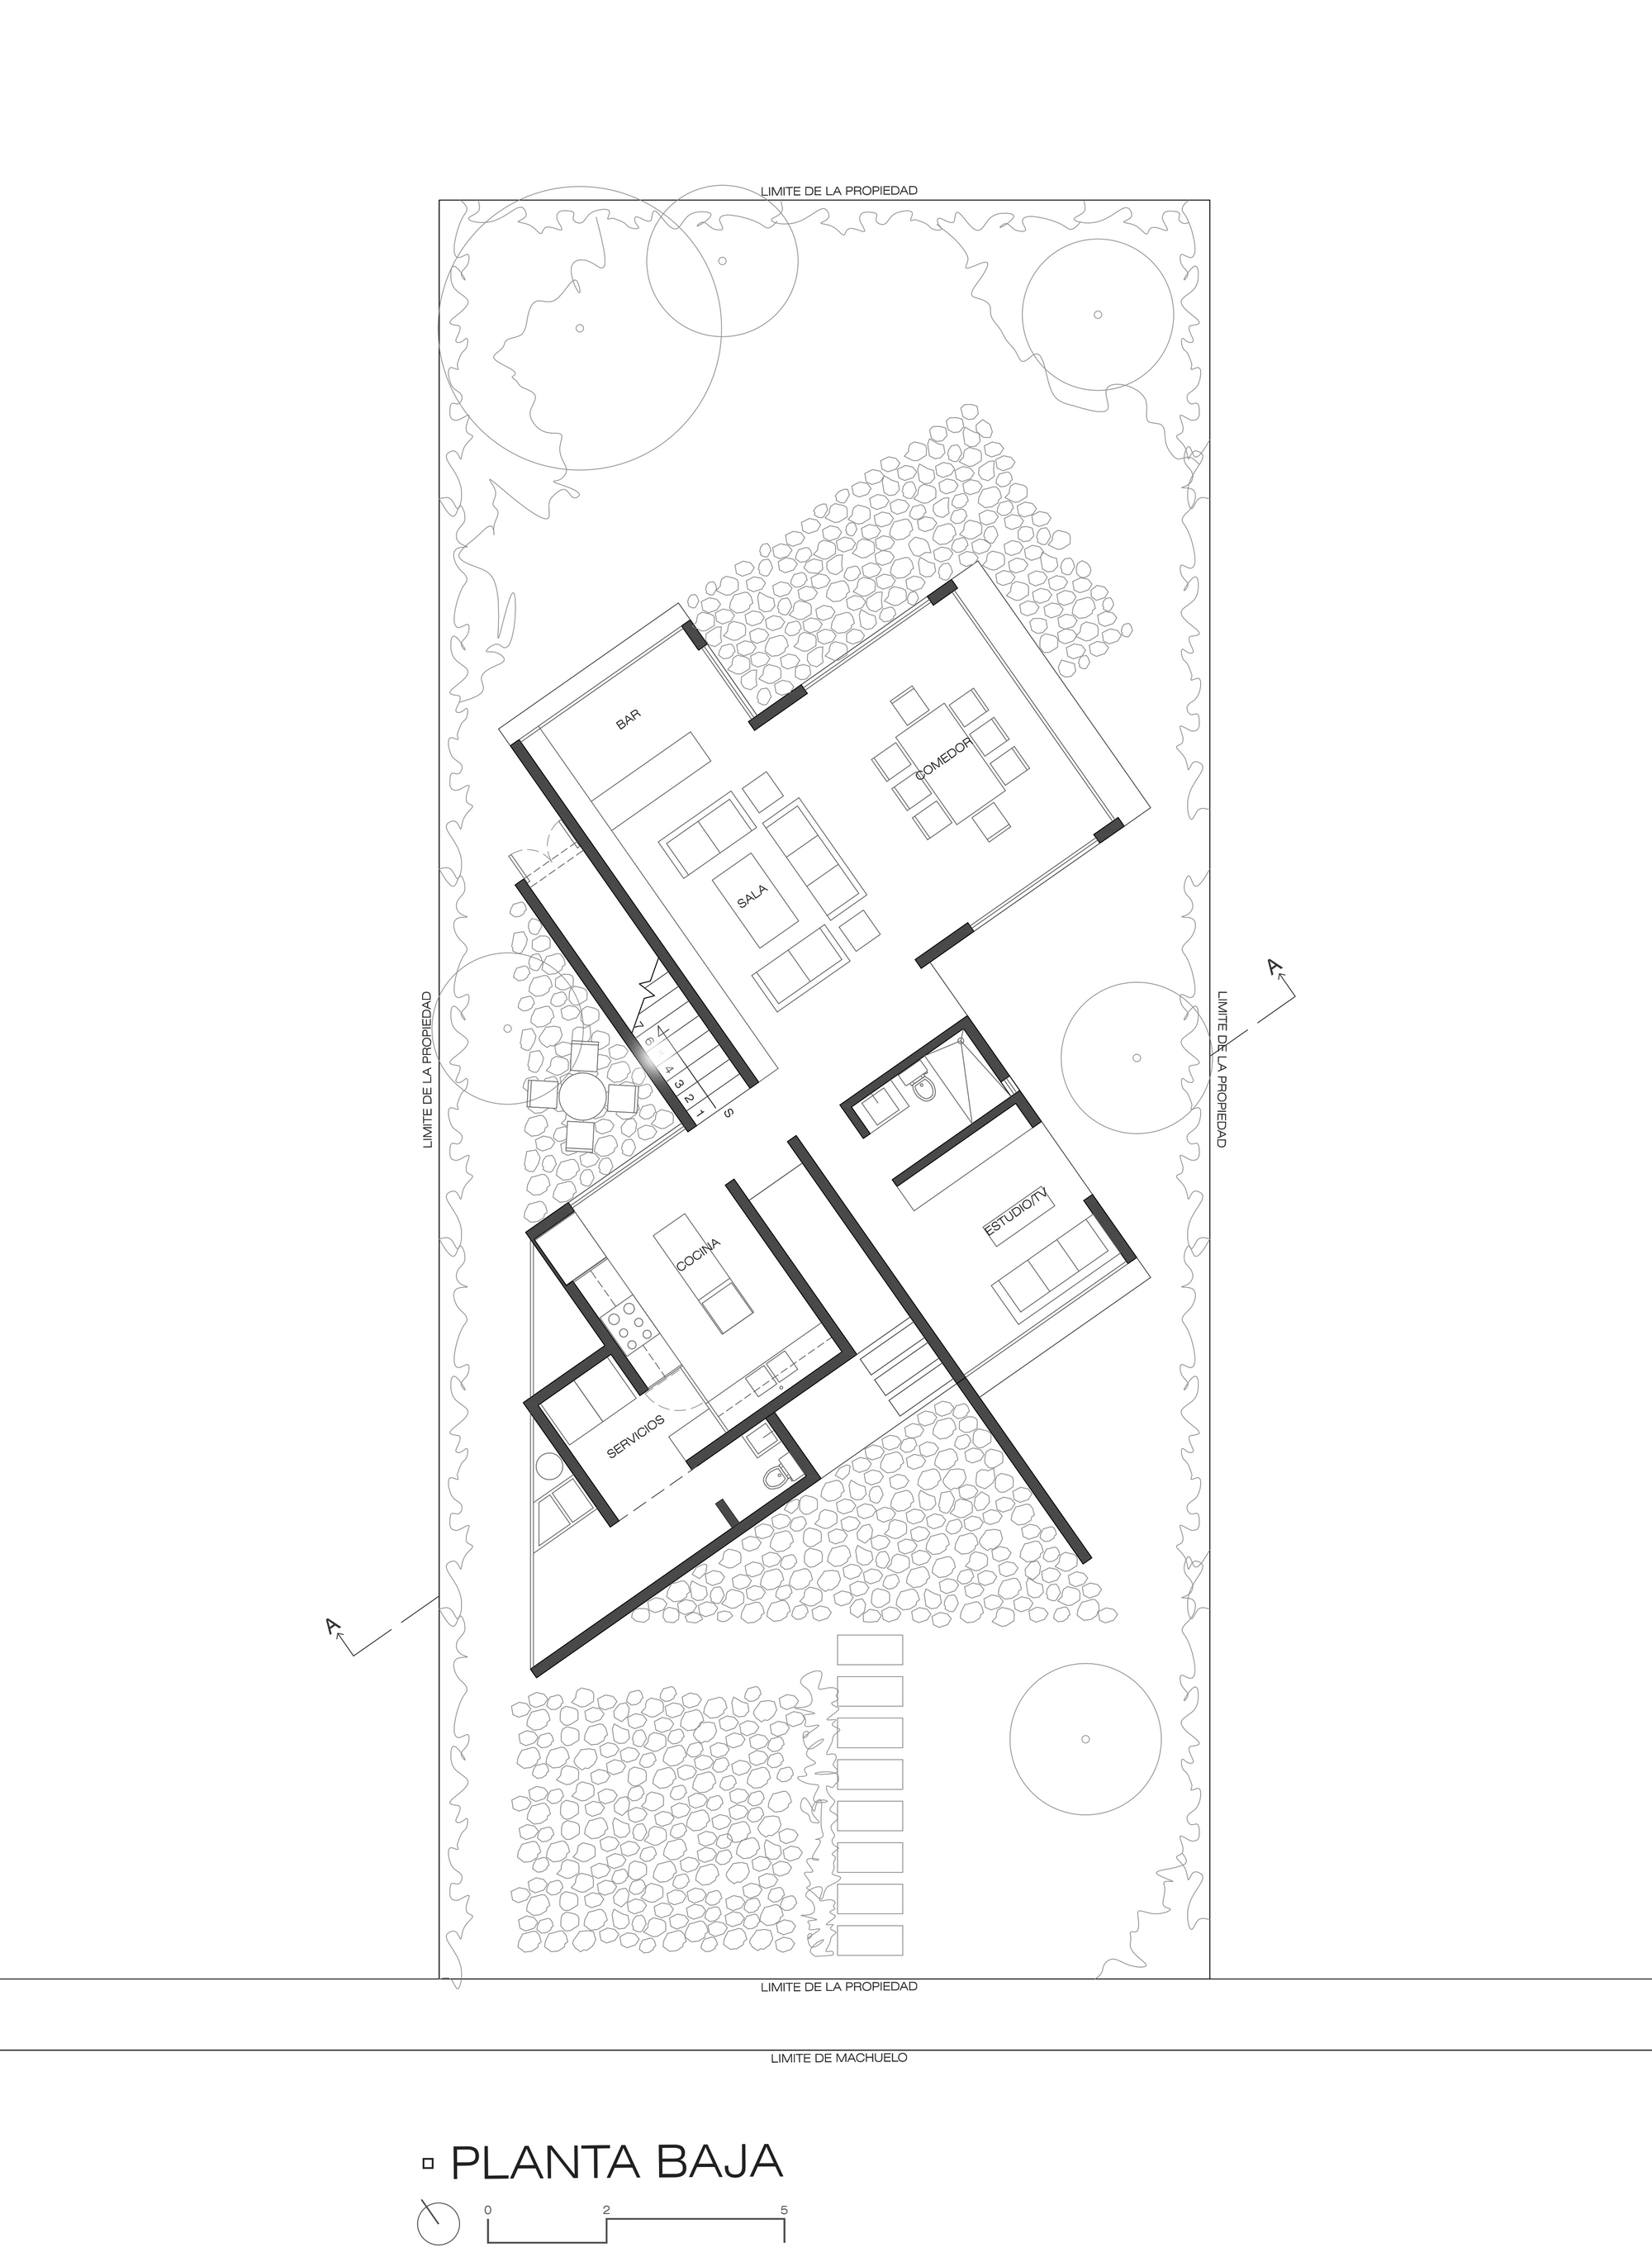 architecture floor plans gallery of eucaliptos house mo g taller de arquitectura 16 10172